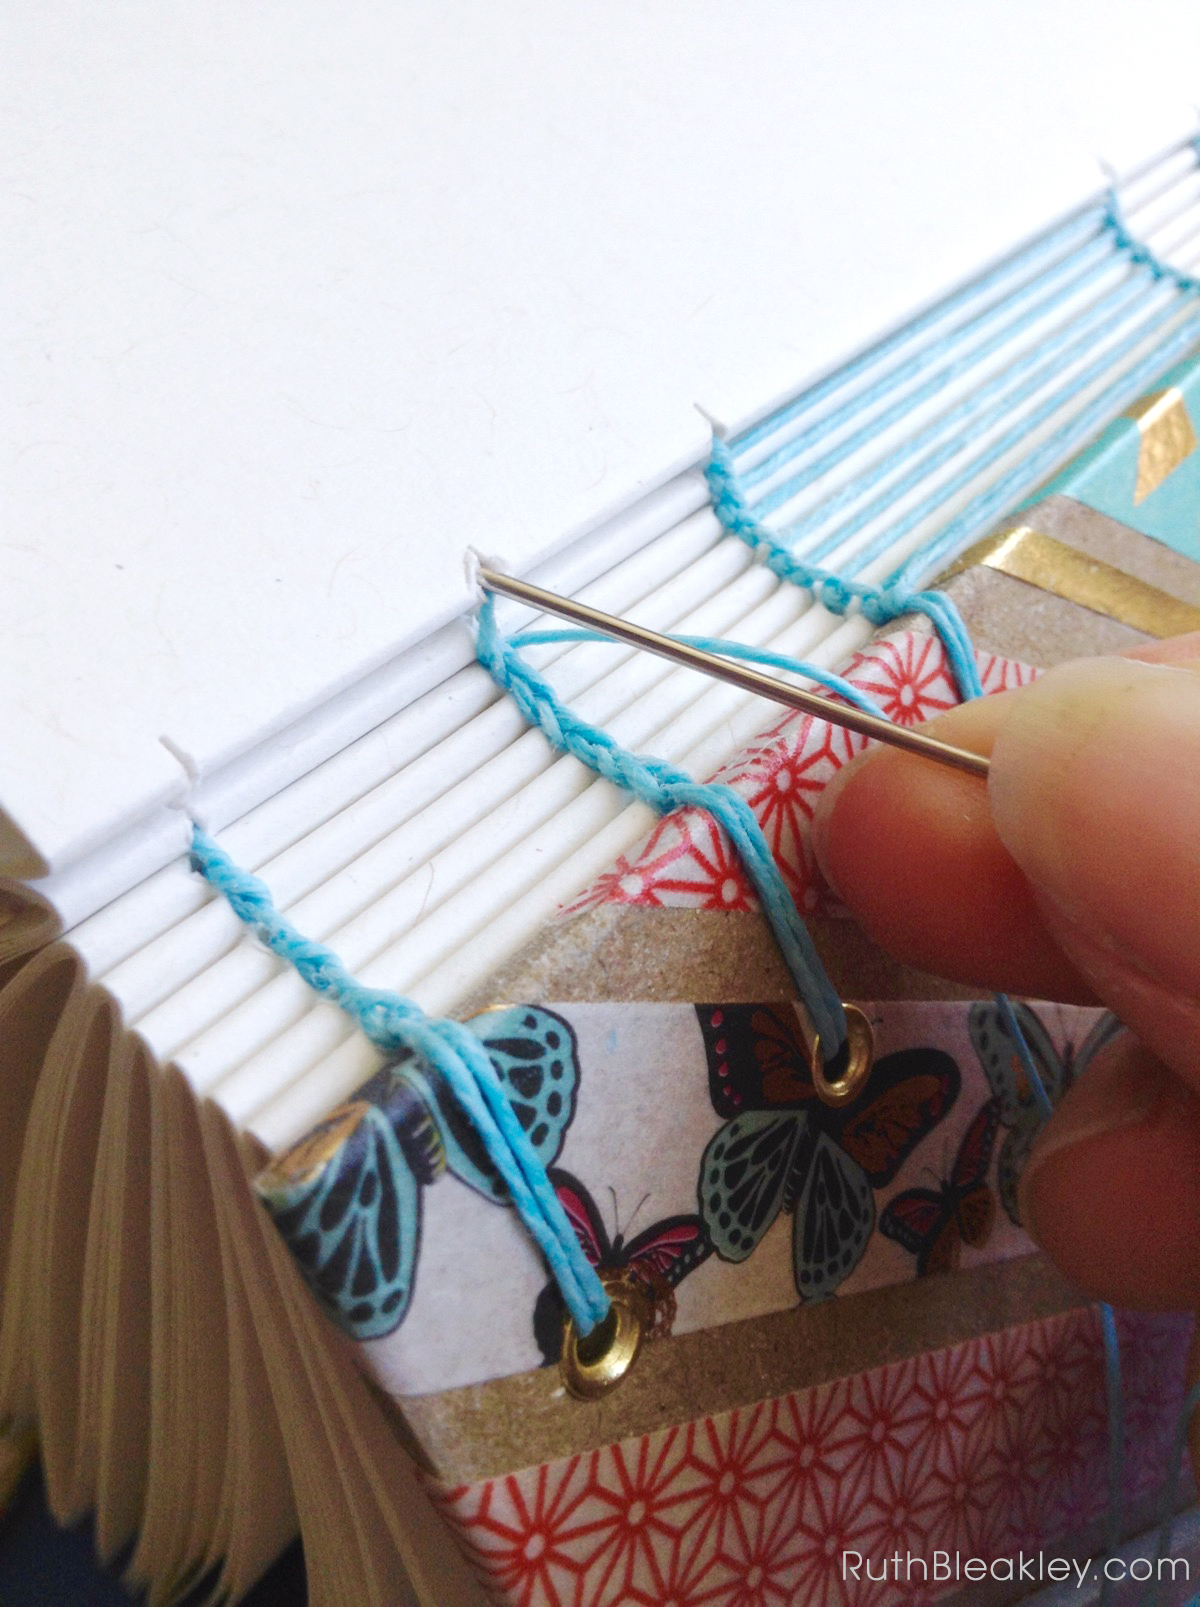 Making Washi Tape Journals with ladder stitching by Ruth Bleakley - 13